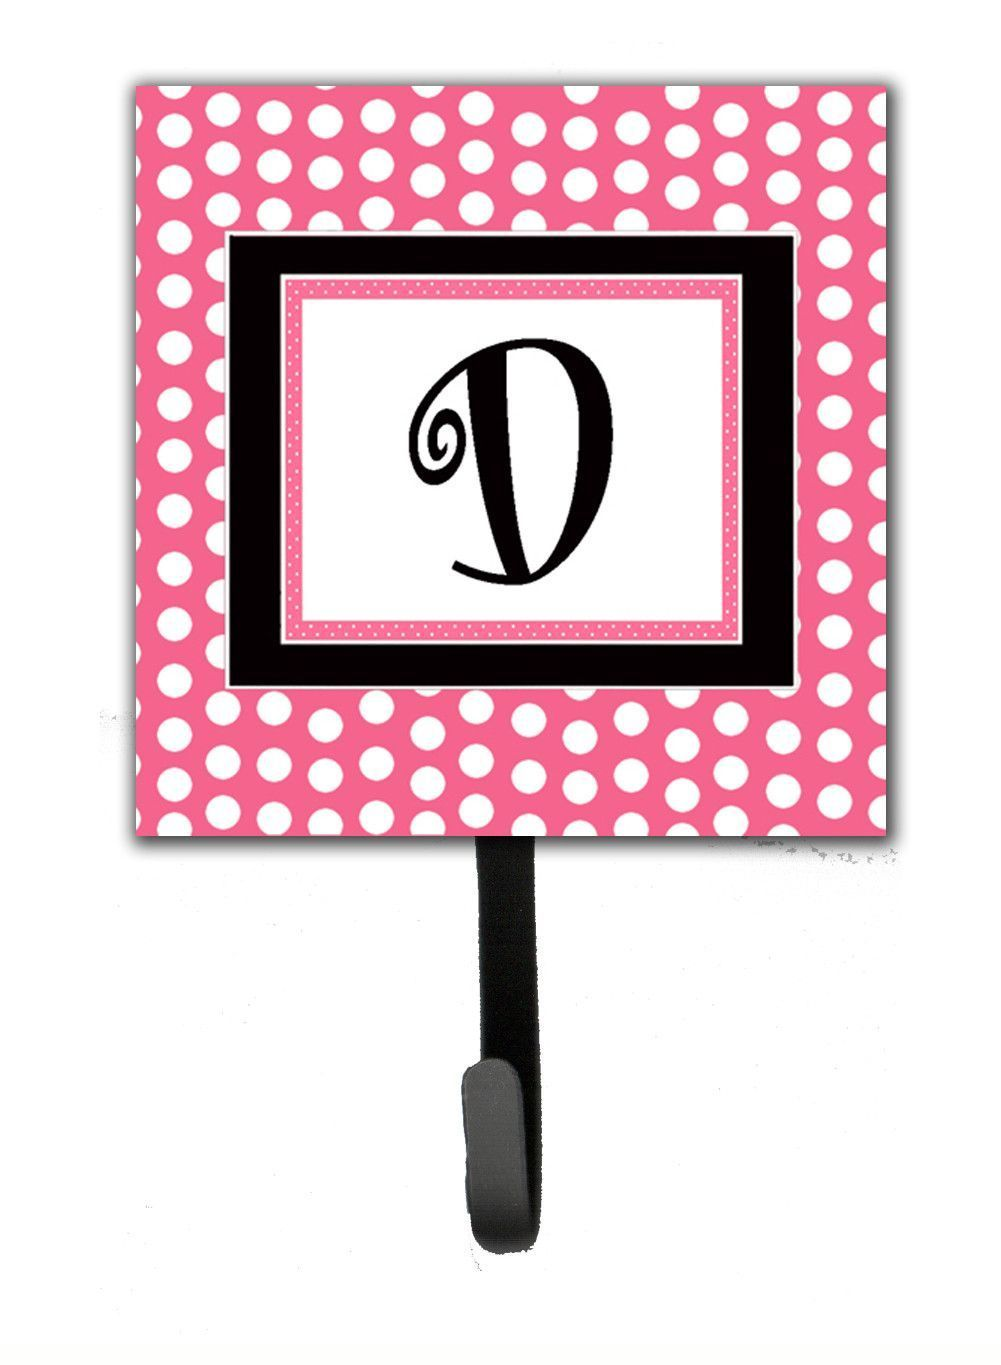 Letter d initial monogram pink black polka dots leash holder or